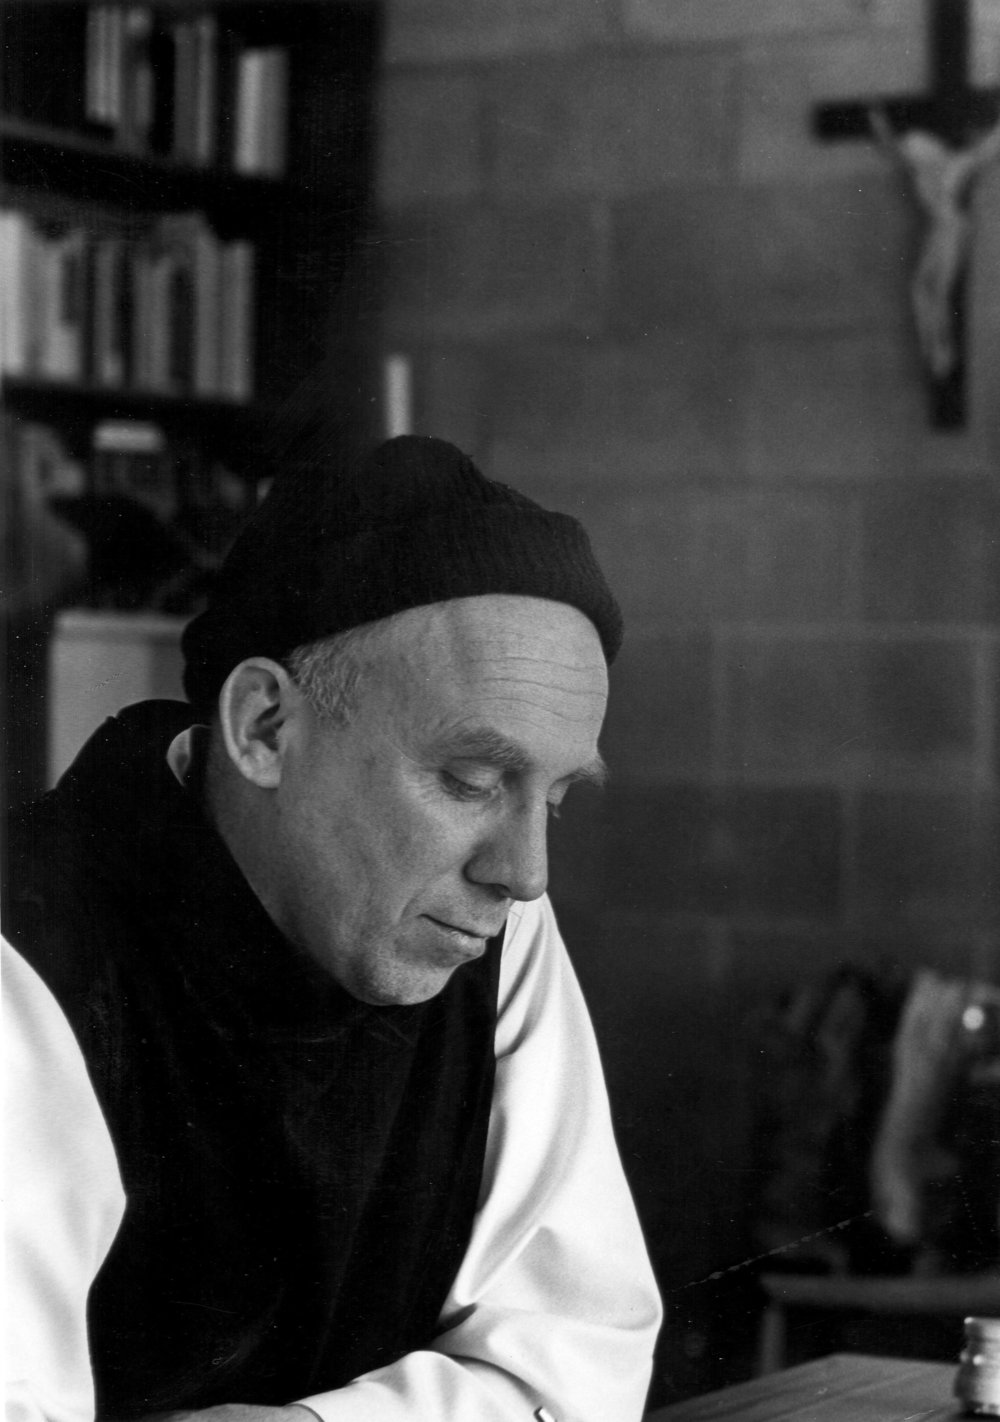 Photograph of Thomas Merton by John Howard Griffin. Used with Permission of the Merton Legacy Trust and the Thomas Merton Center.